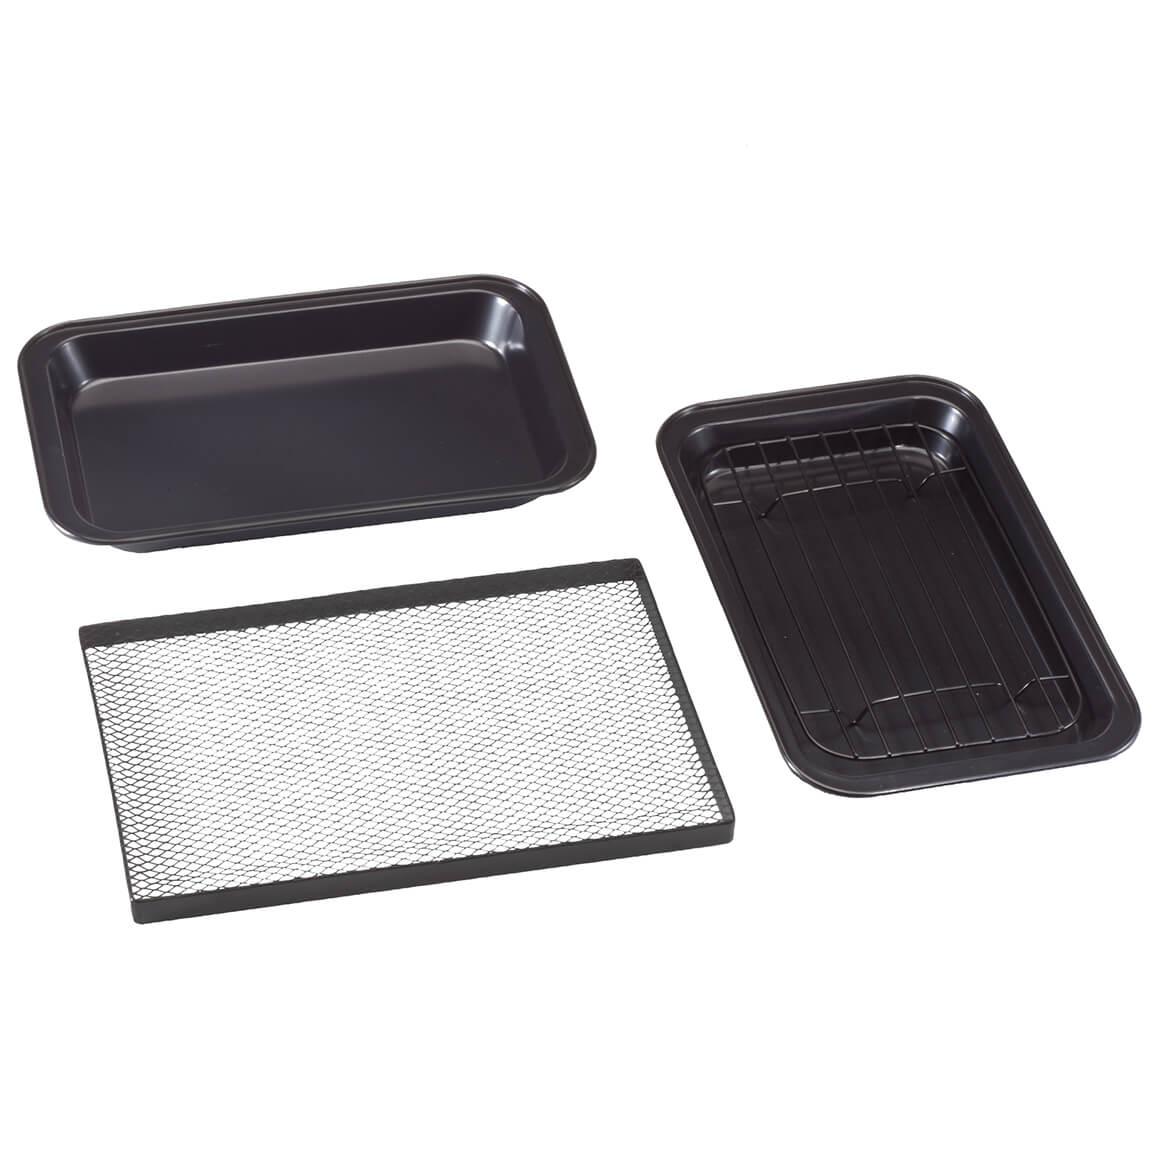 Toaster Oven Pans by Home Style Kitchen ™ Miles Kimball